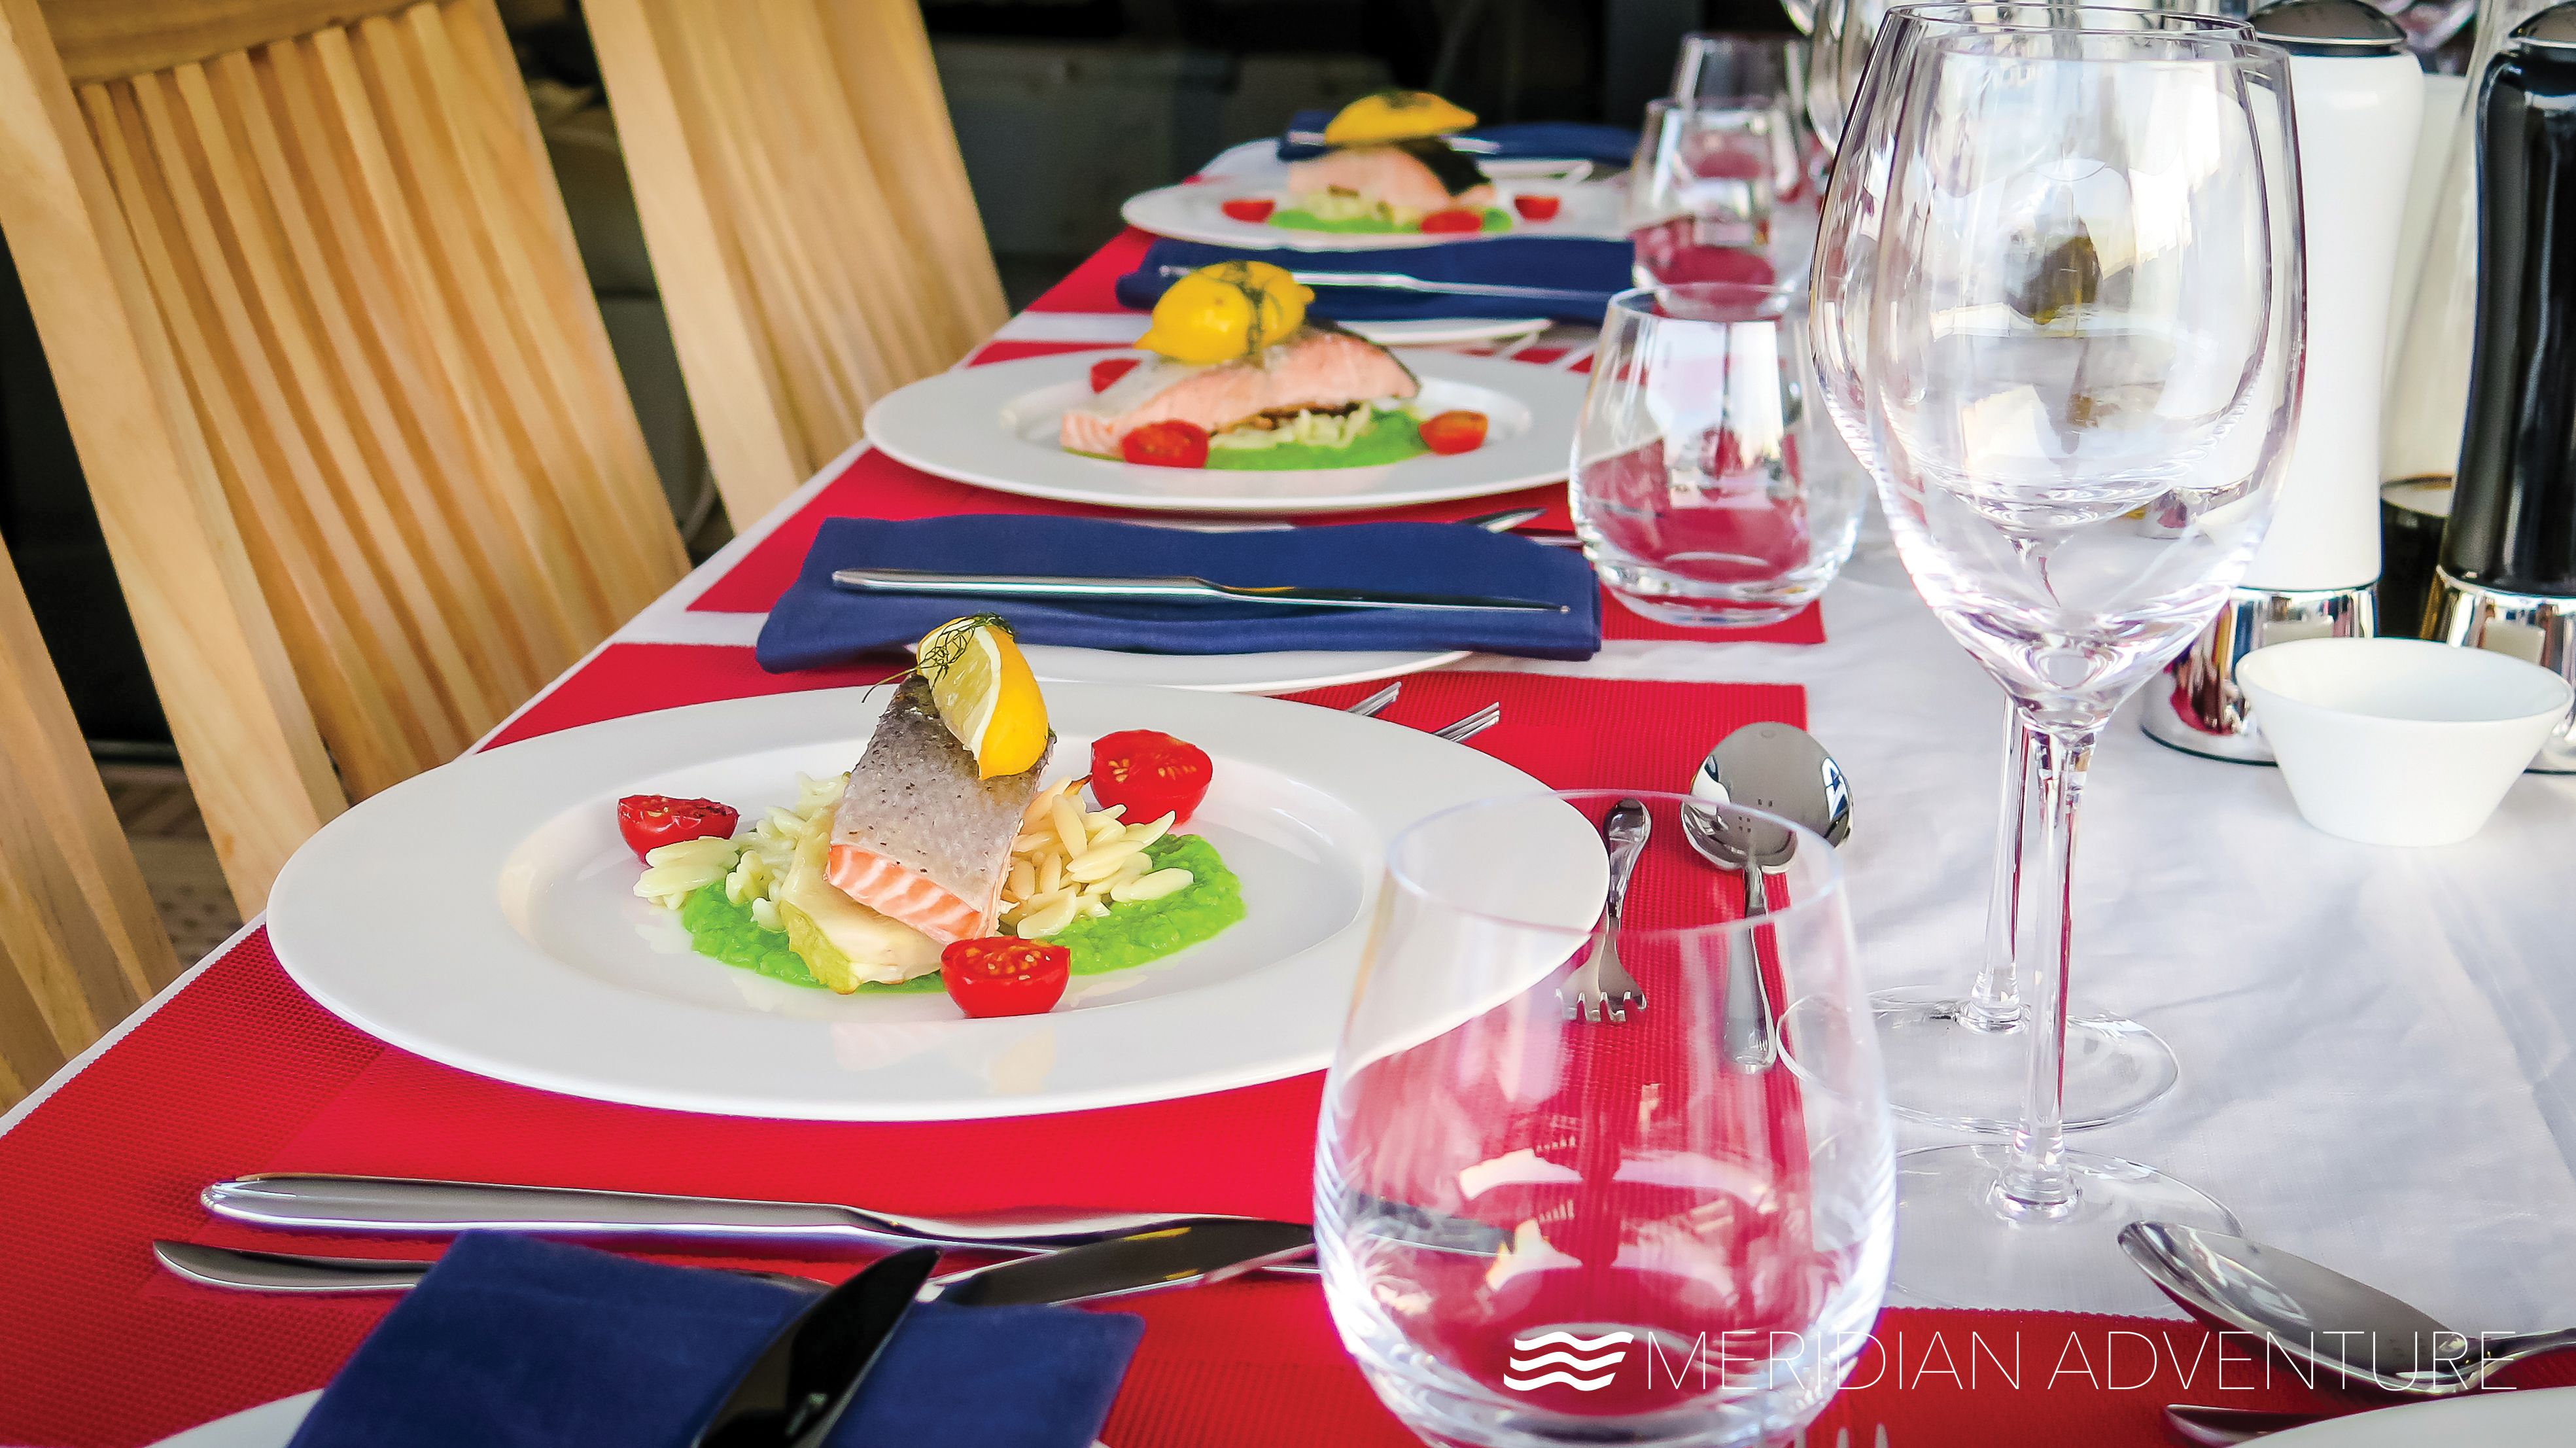 Delicious meals - our itinerary have a great variety of activities, also the culinary ones.